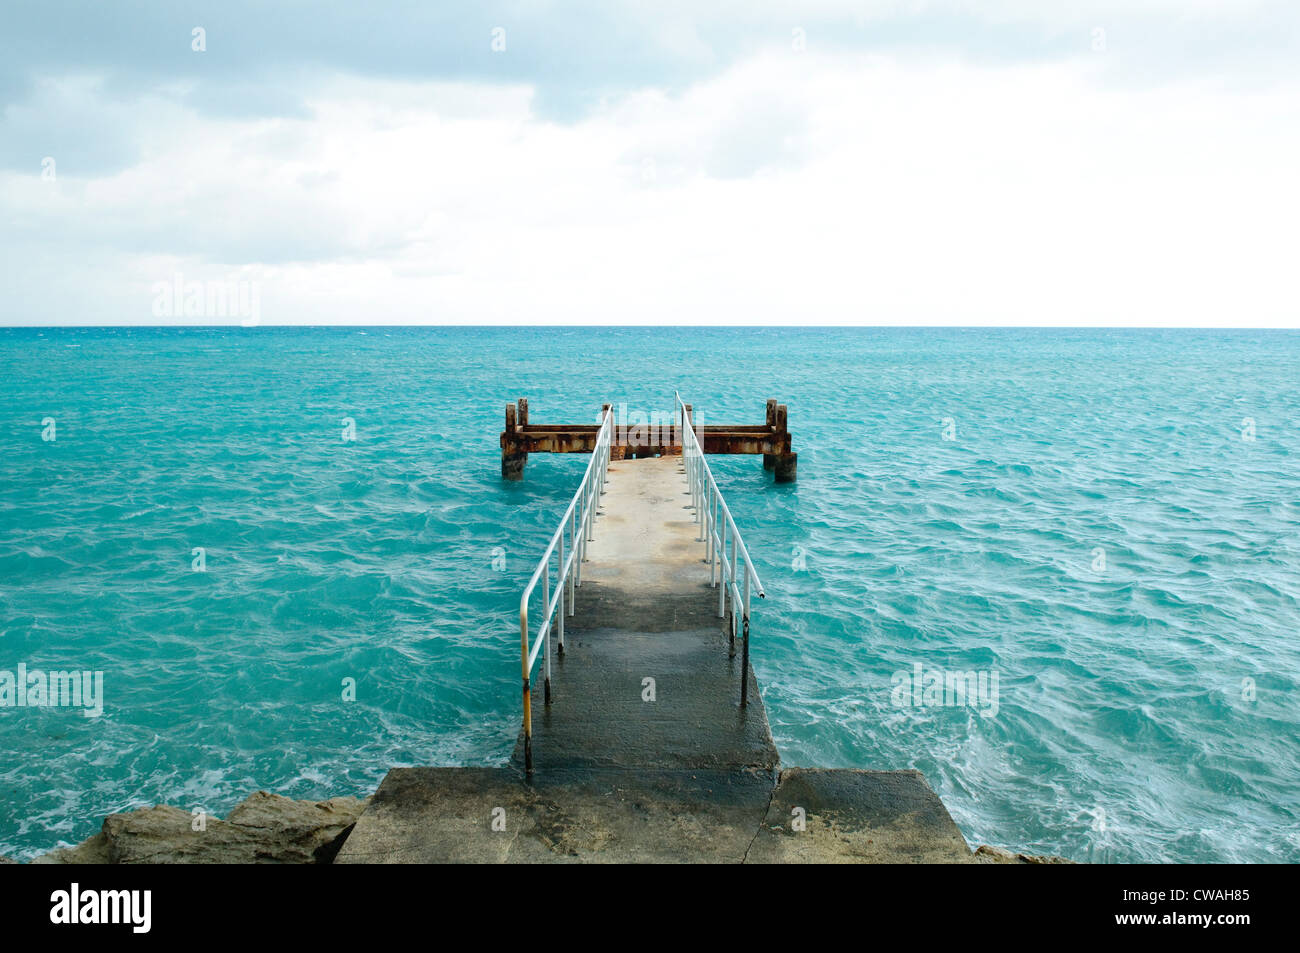 Pier going into blue sea, St. George's Parish, Bermuda - Stock Image